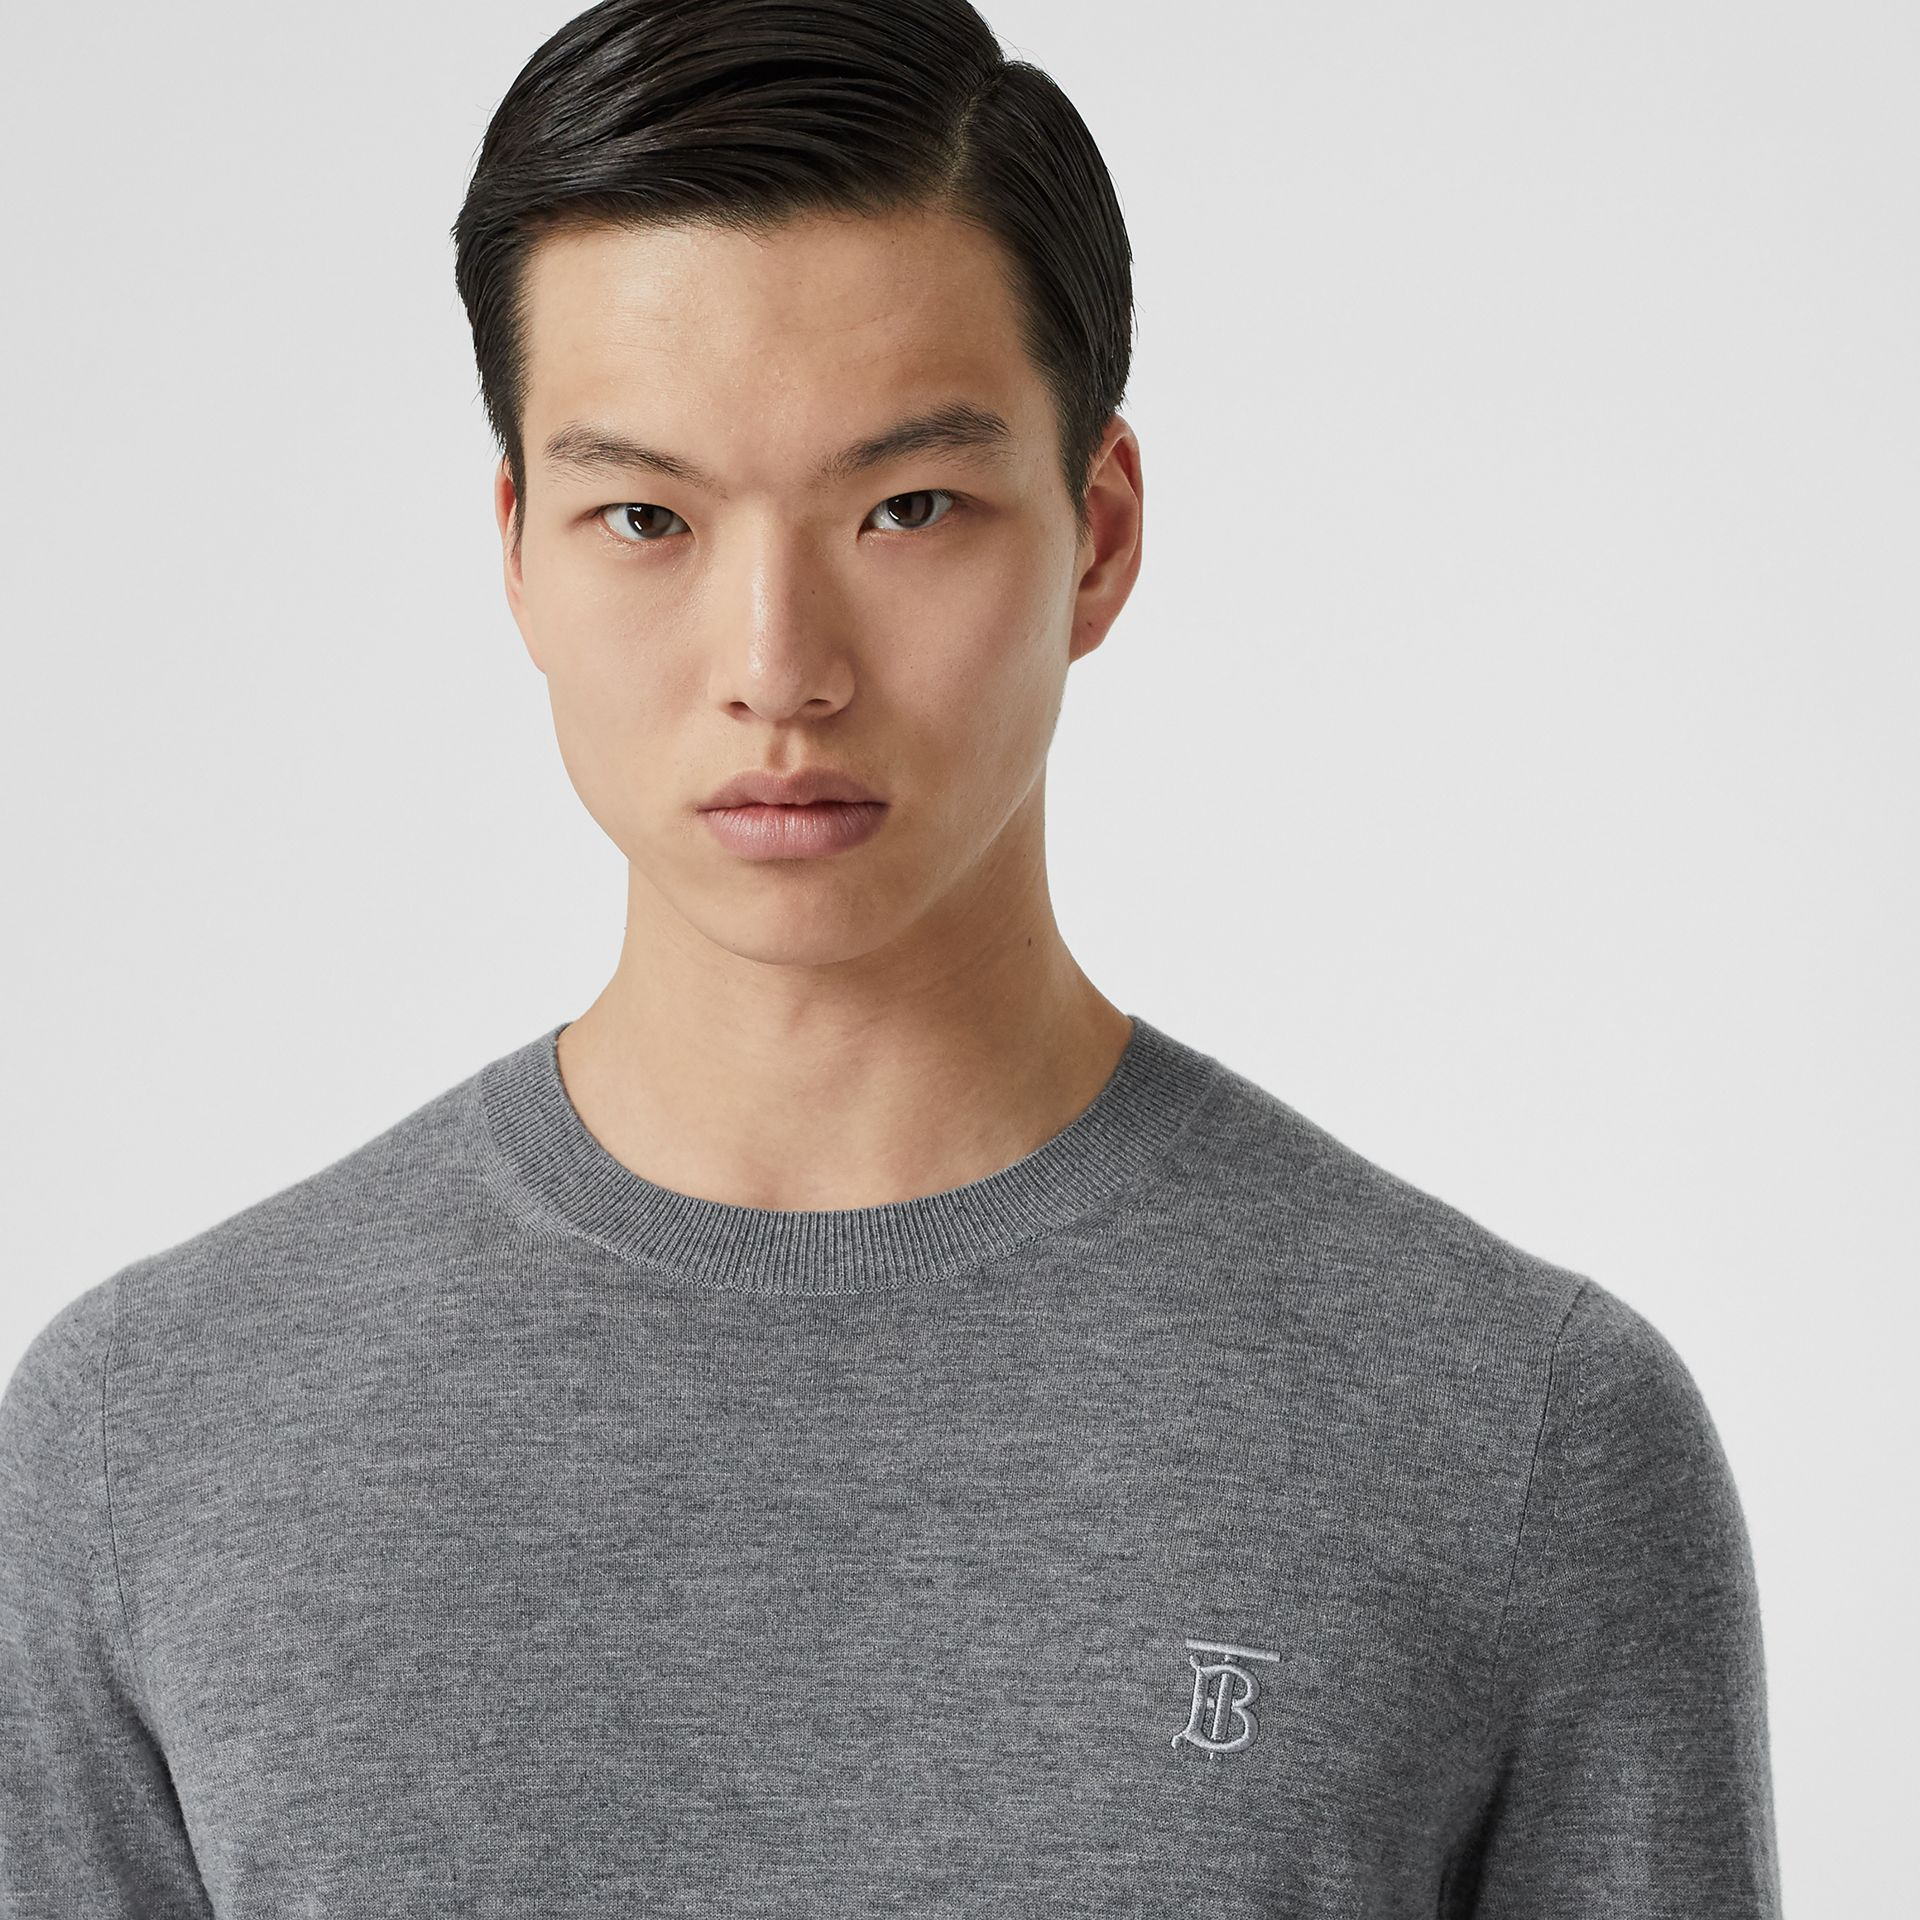 Monogram Motif Cashmere Sweater in Pale Grey Melange - Men | Burberry - gallery image 1